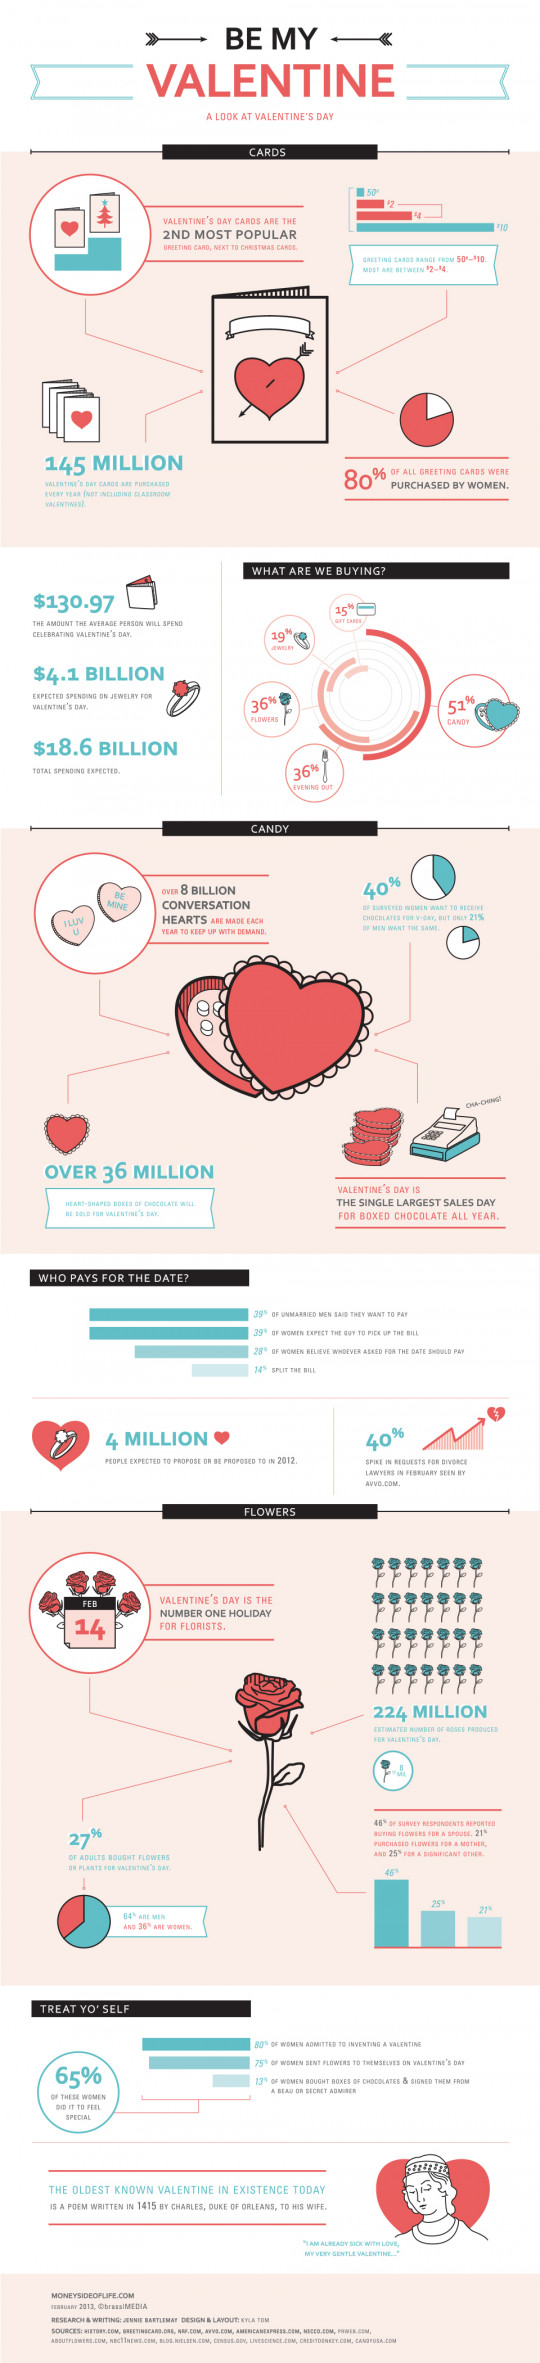 Be My Valentine: A Look at Valentine